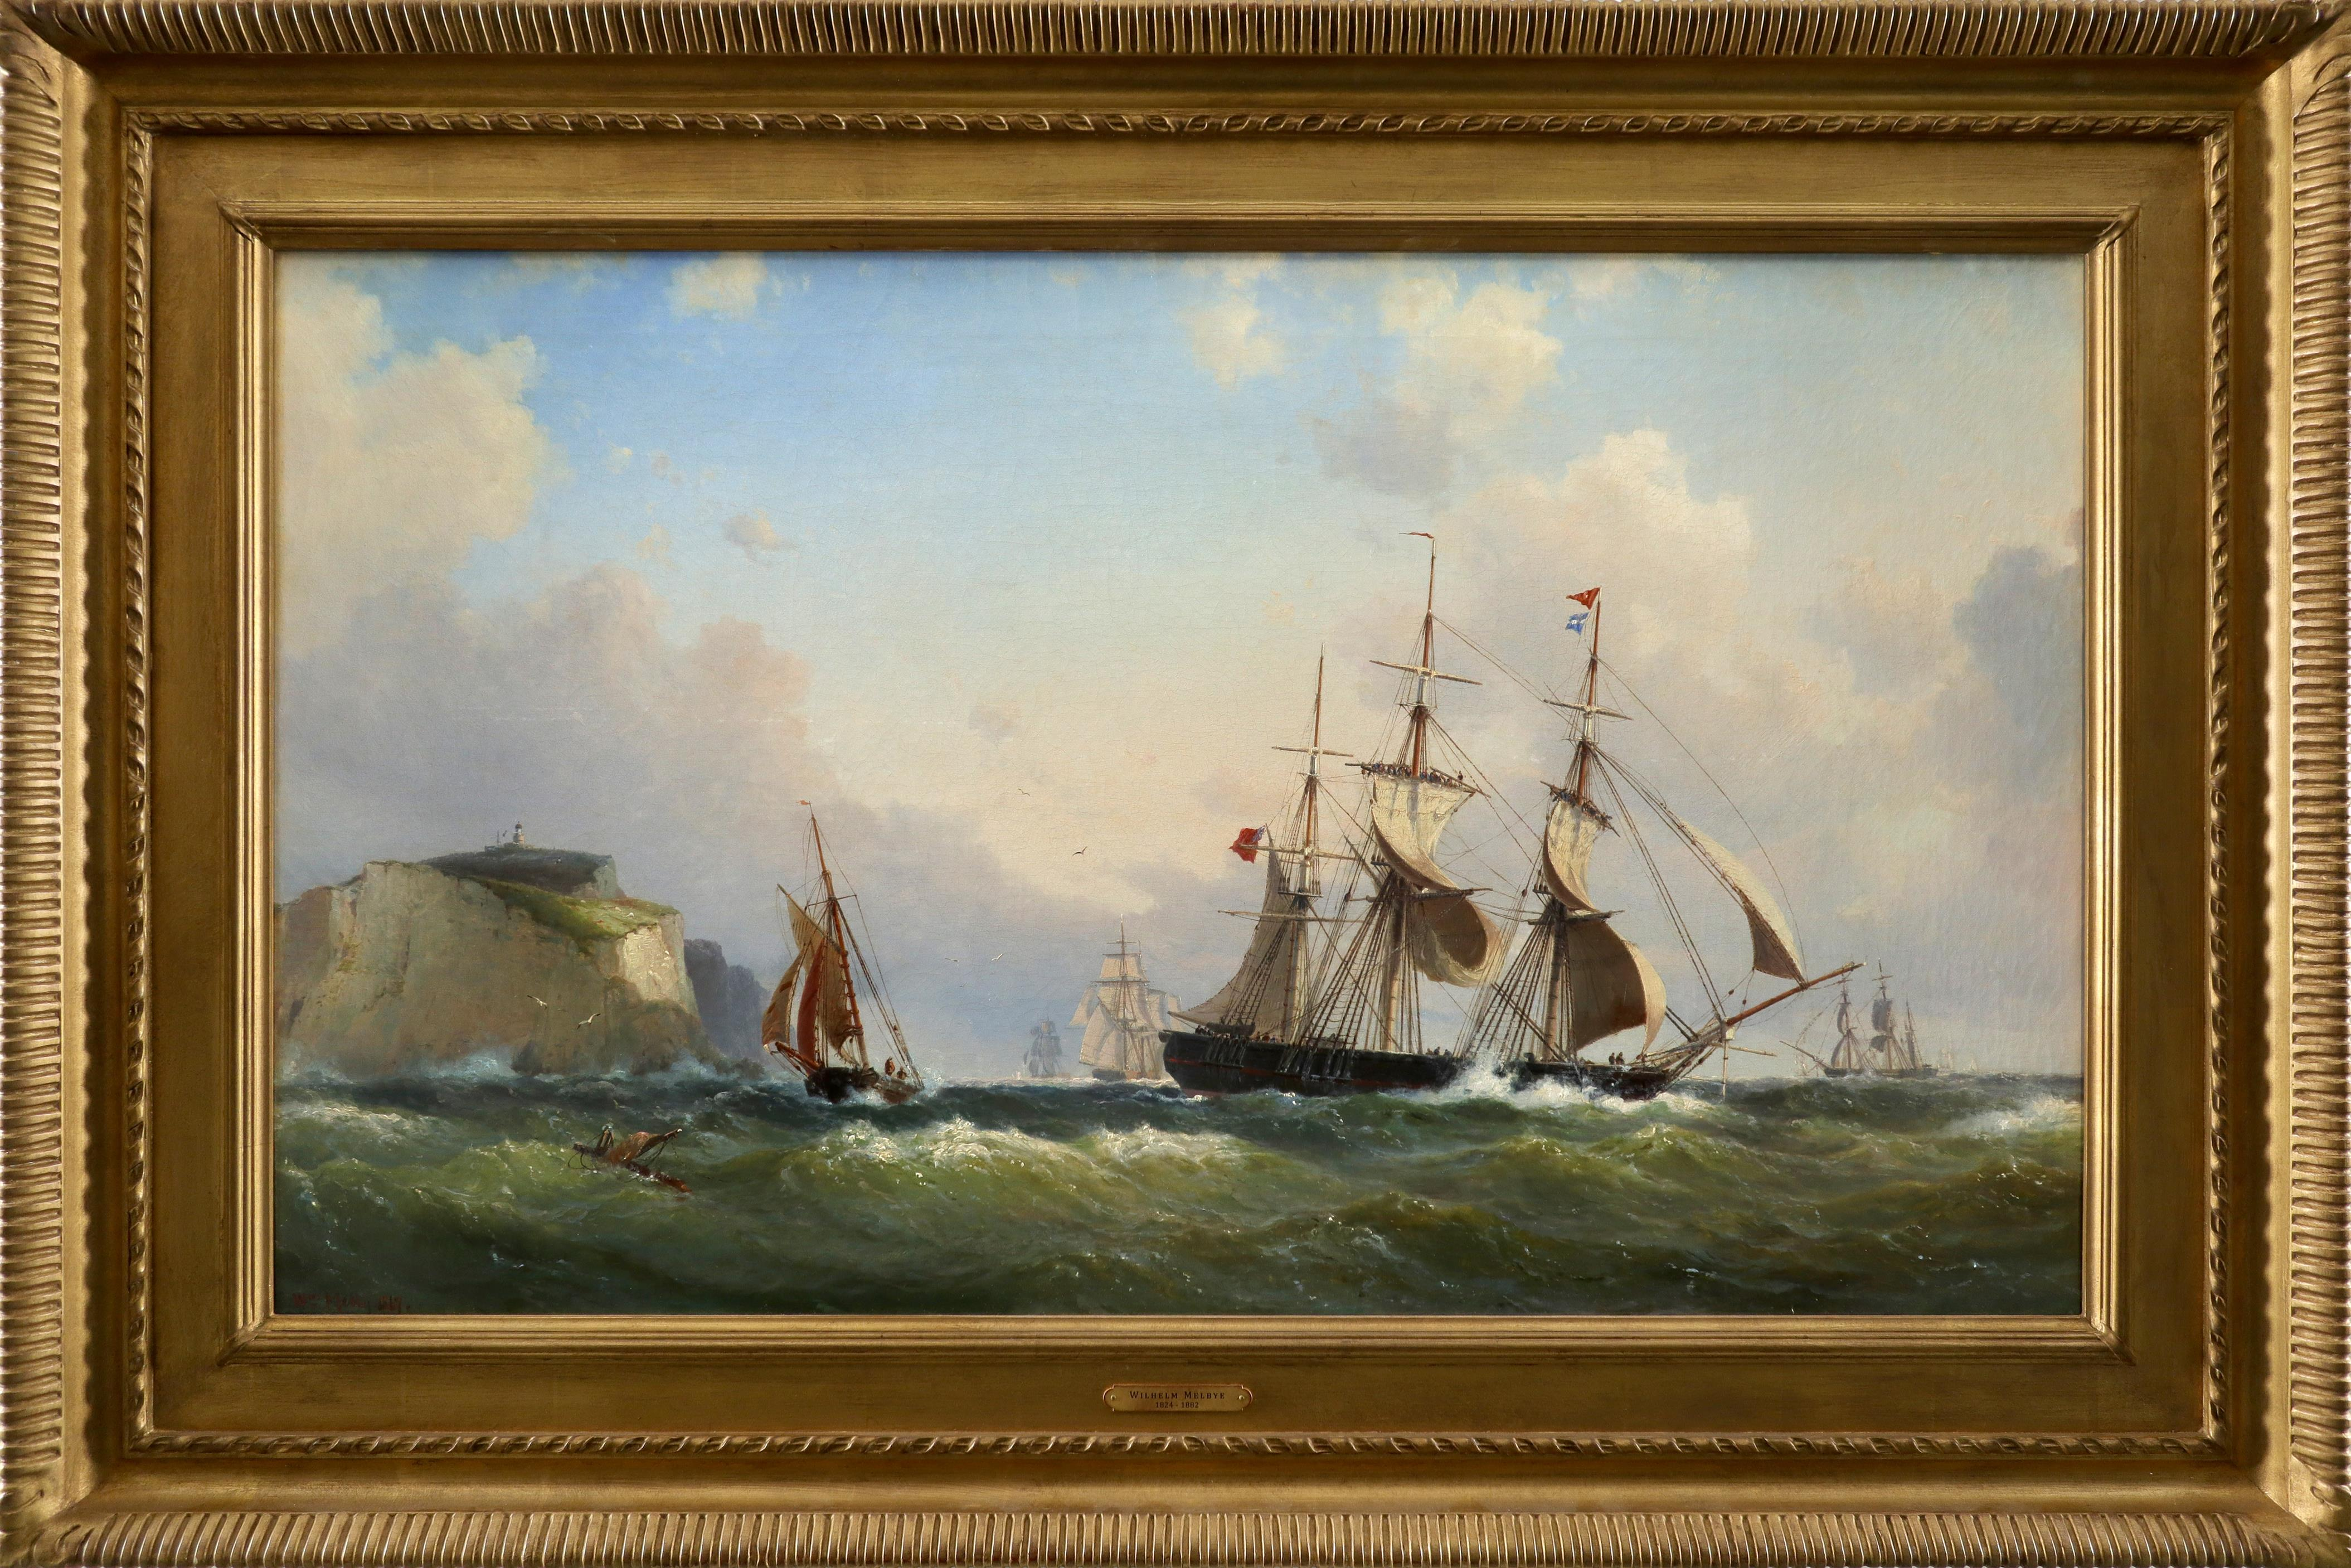 Wilhelm Melbye (Danish 1824-1882) Shipping off Scratchell's Bay, Isle of Wight Signed and dated Wm - Image 2 of 3